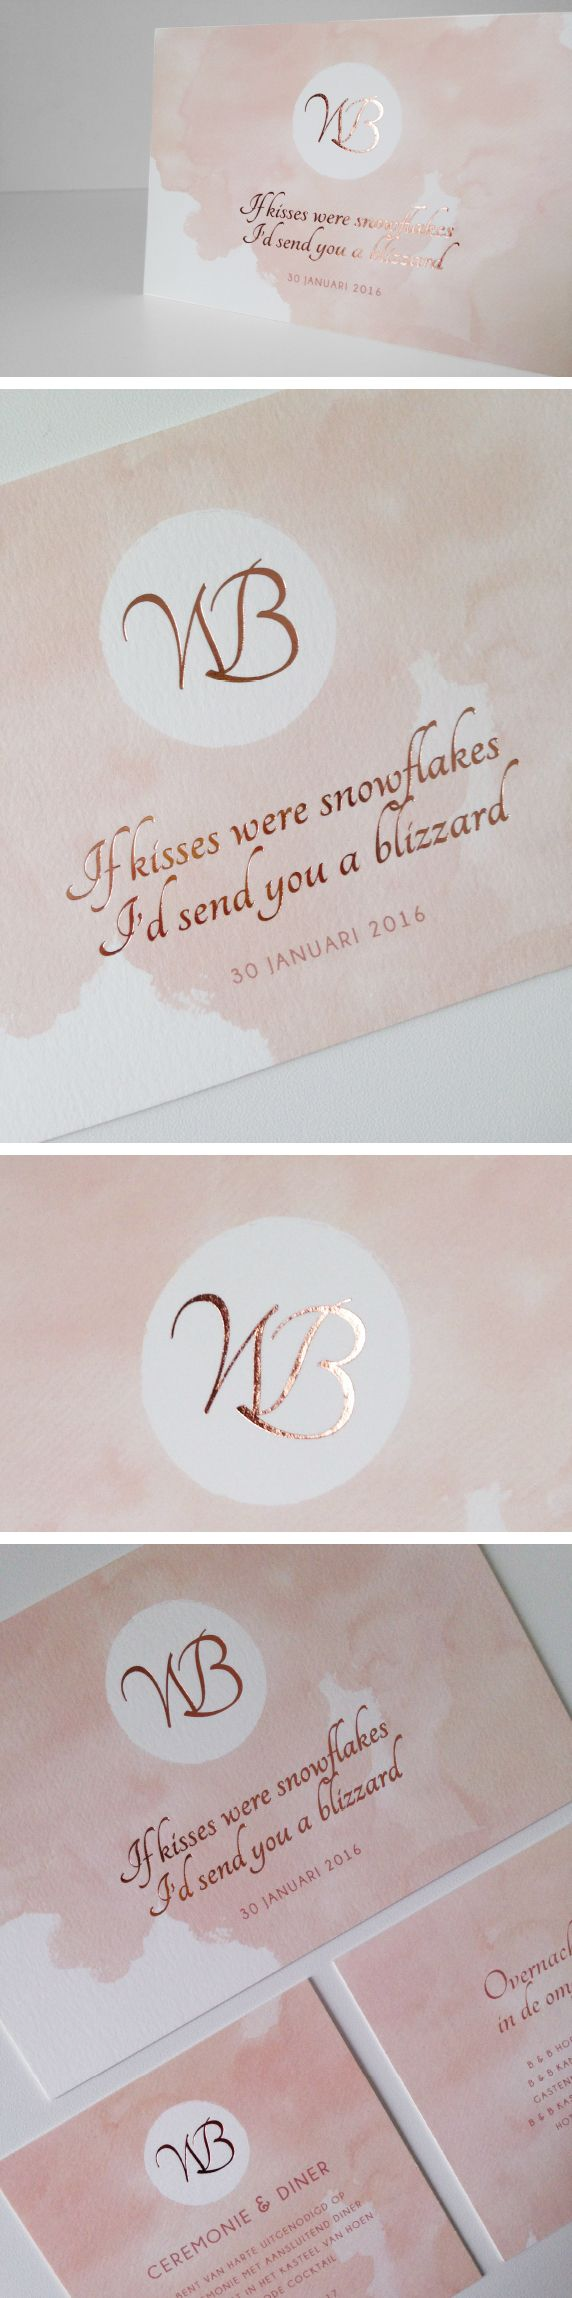 koperfolie, aquarelle, initialen, copper foil wedding invitation trouwuitnodiging watercolor paint roos verf